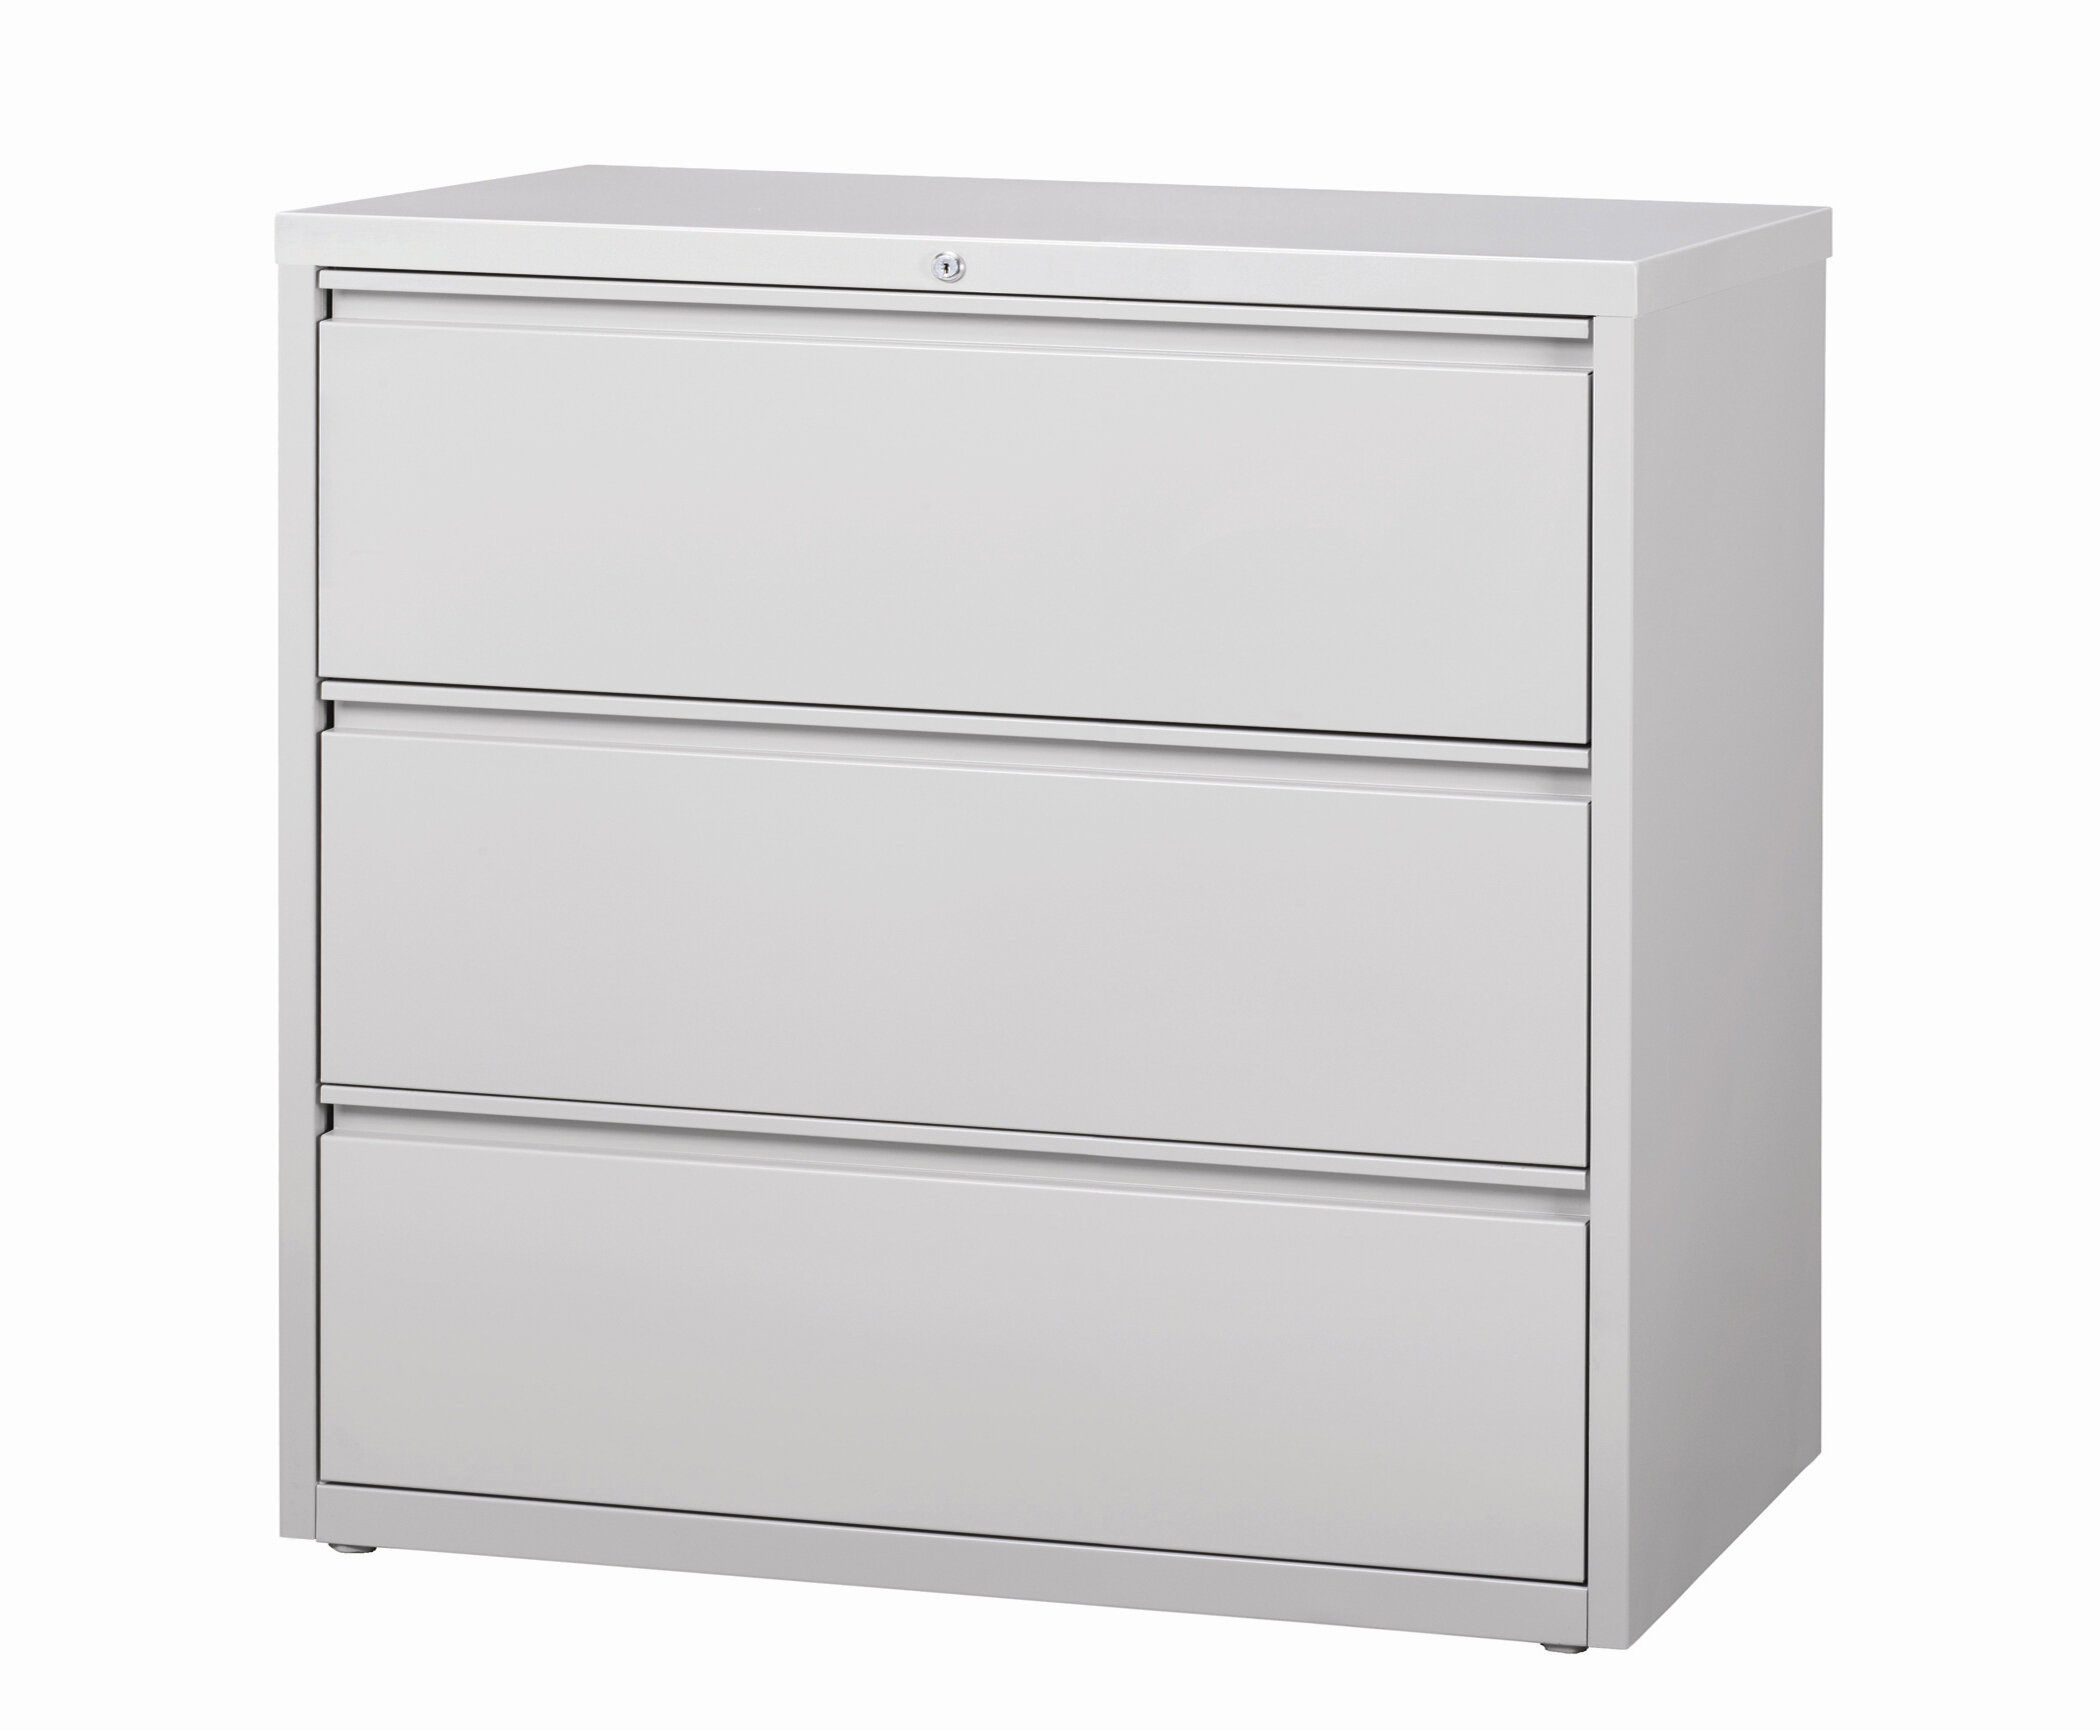 Harietta 45 Drawer Lateral Filing Cabinet